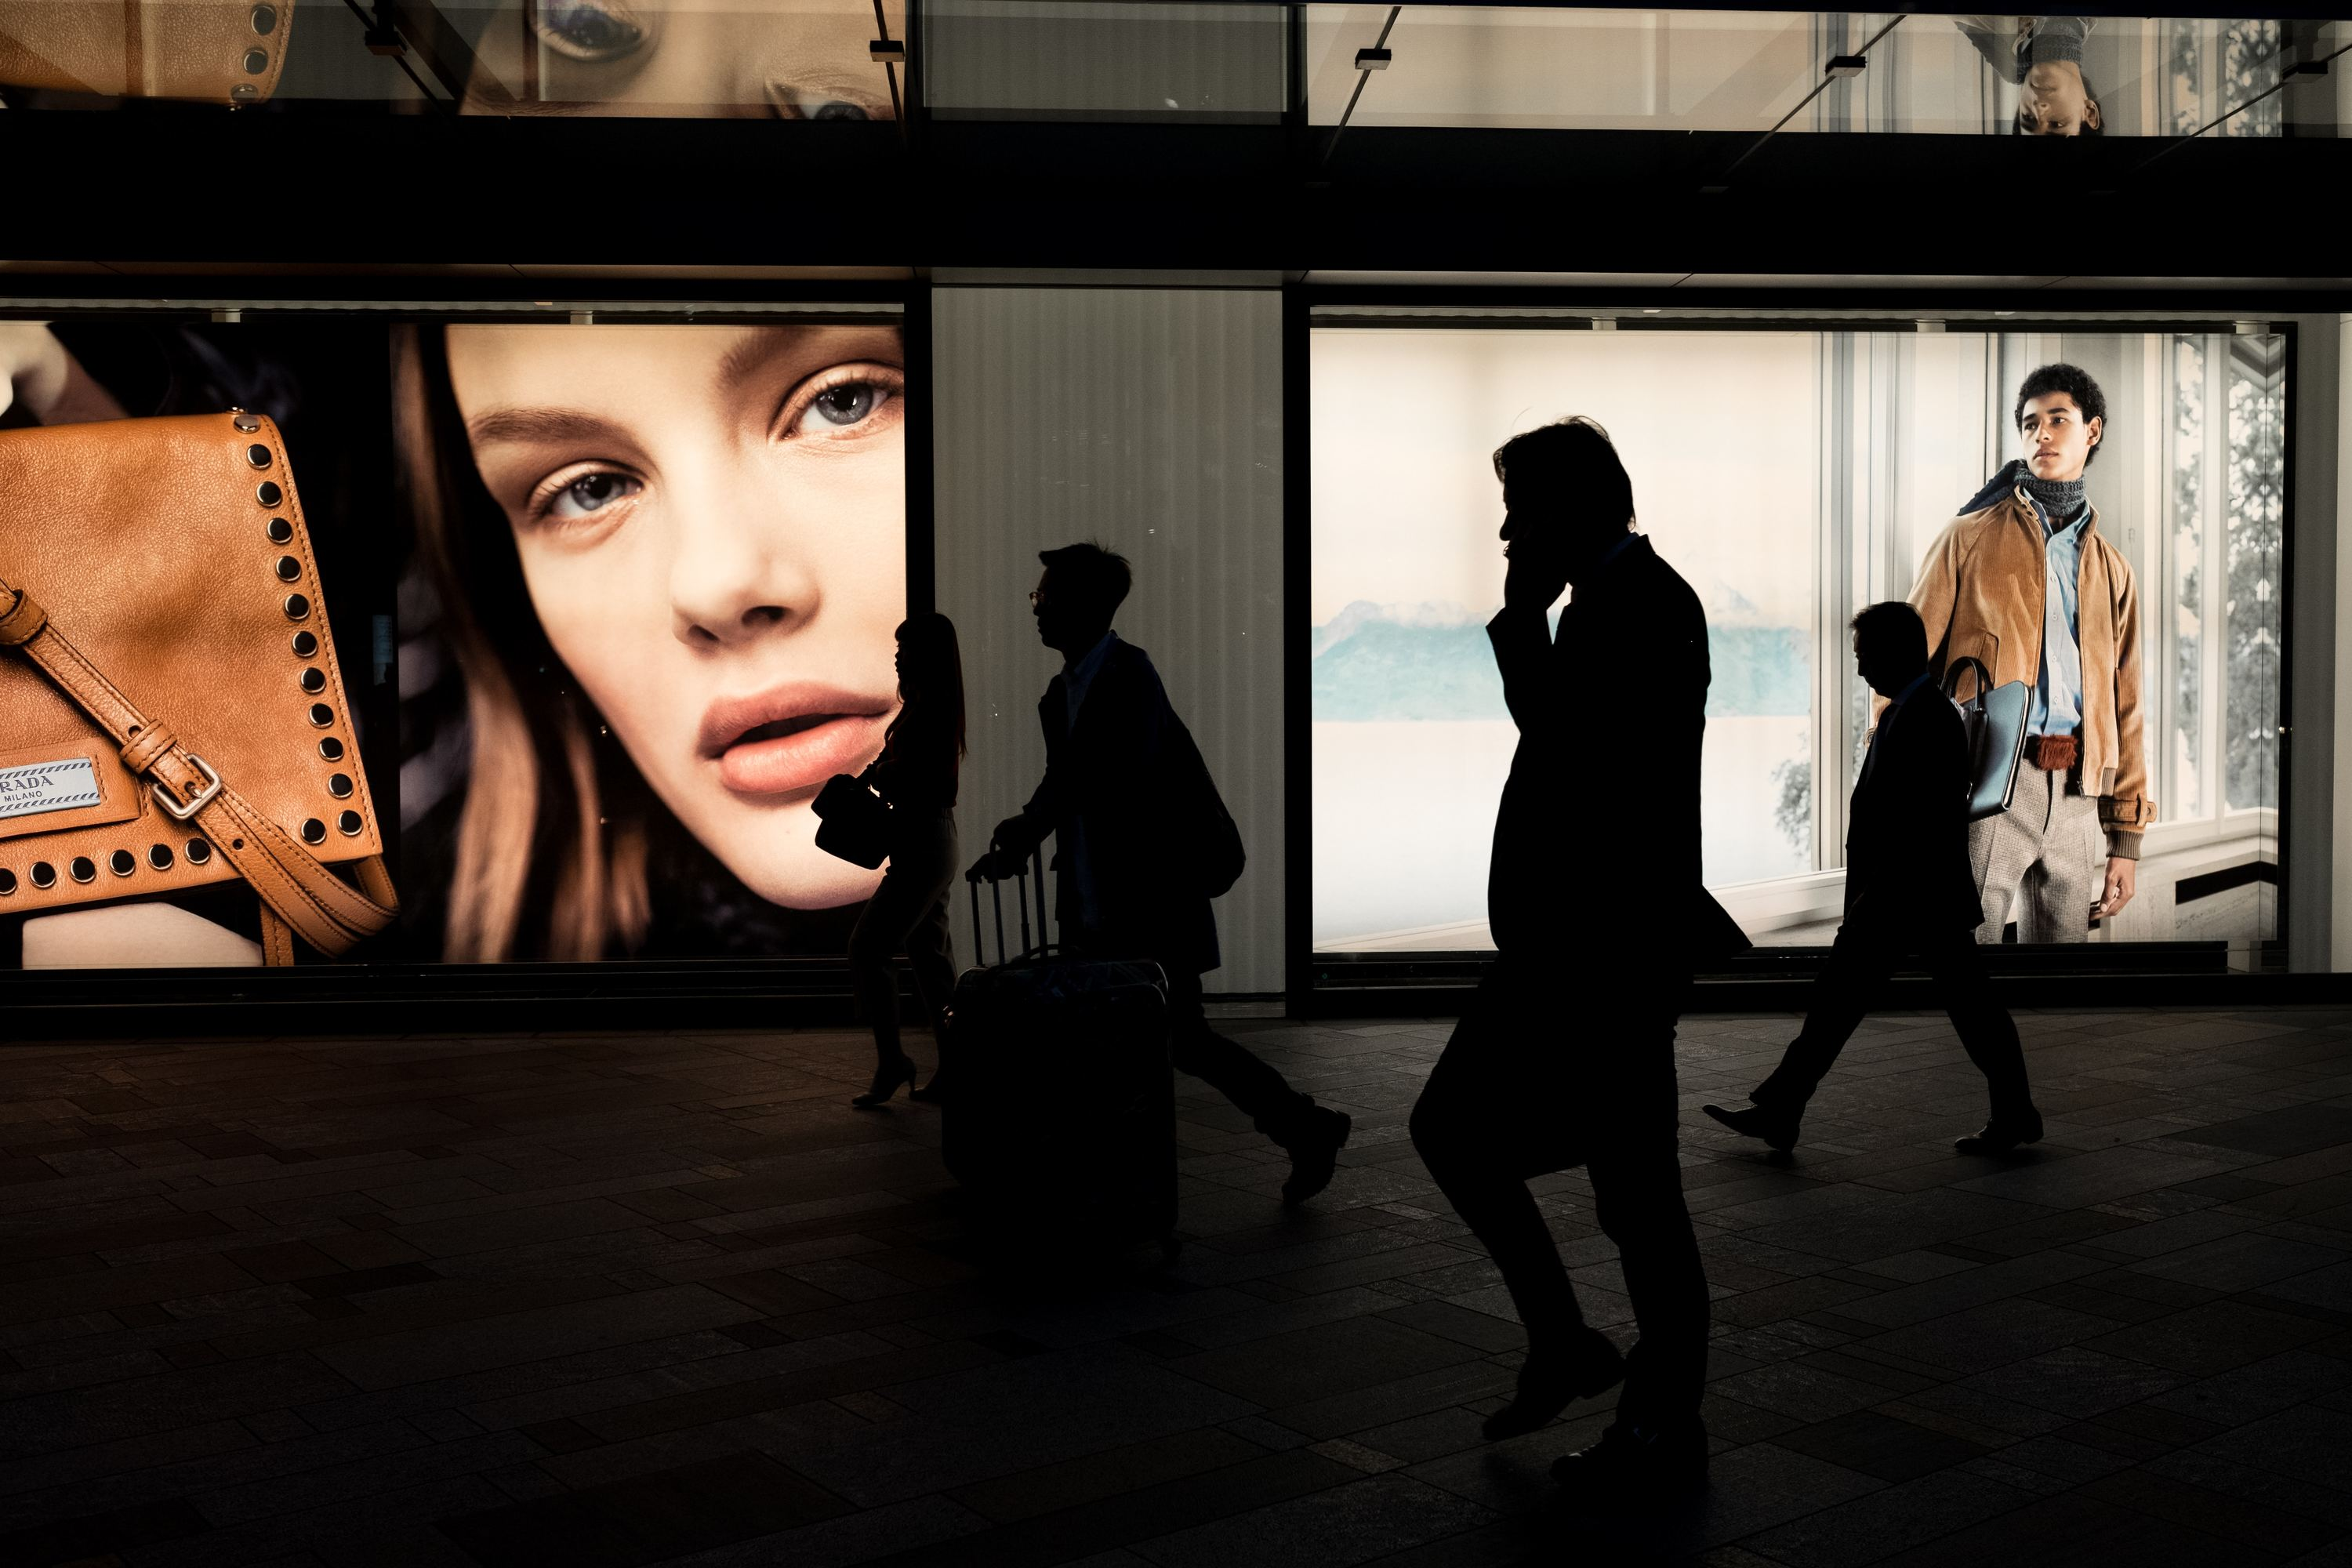 Digital Signage - Displays